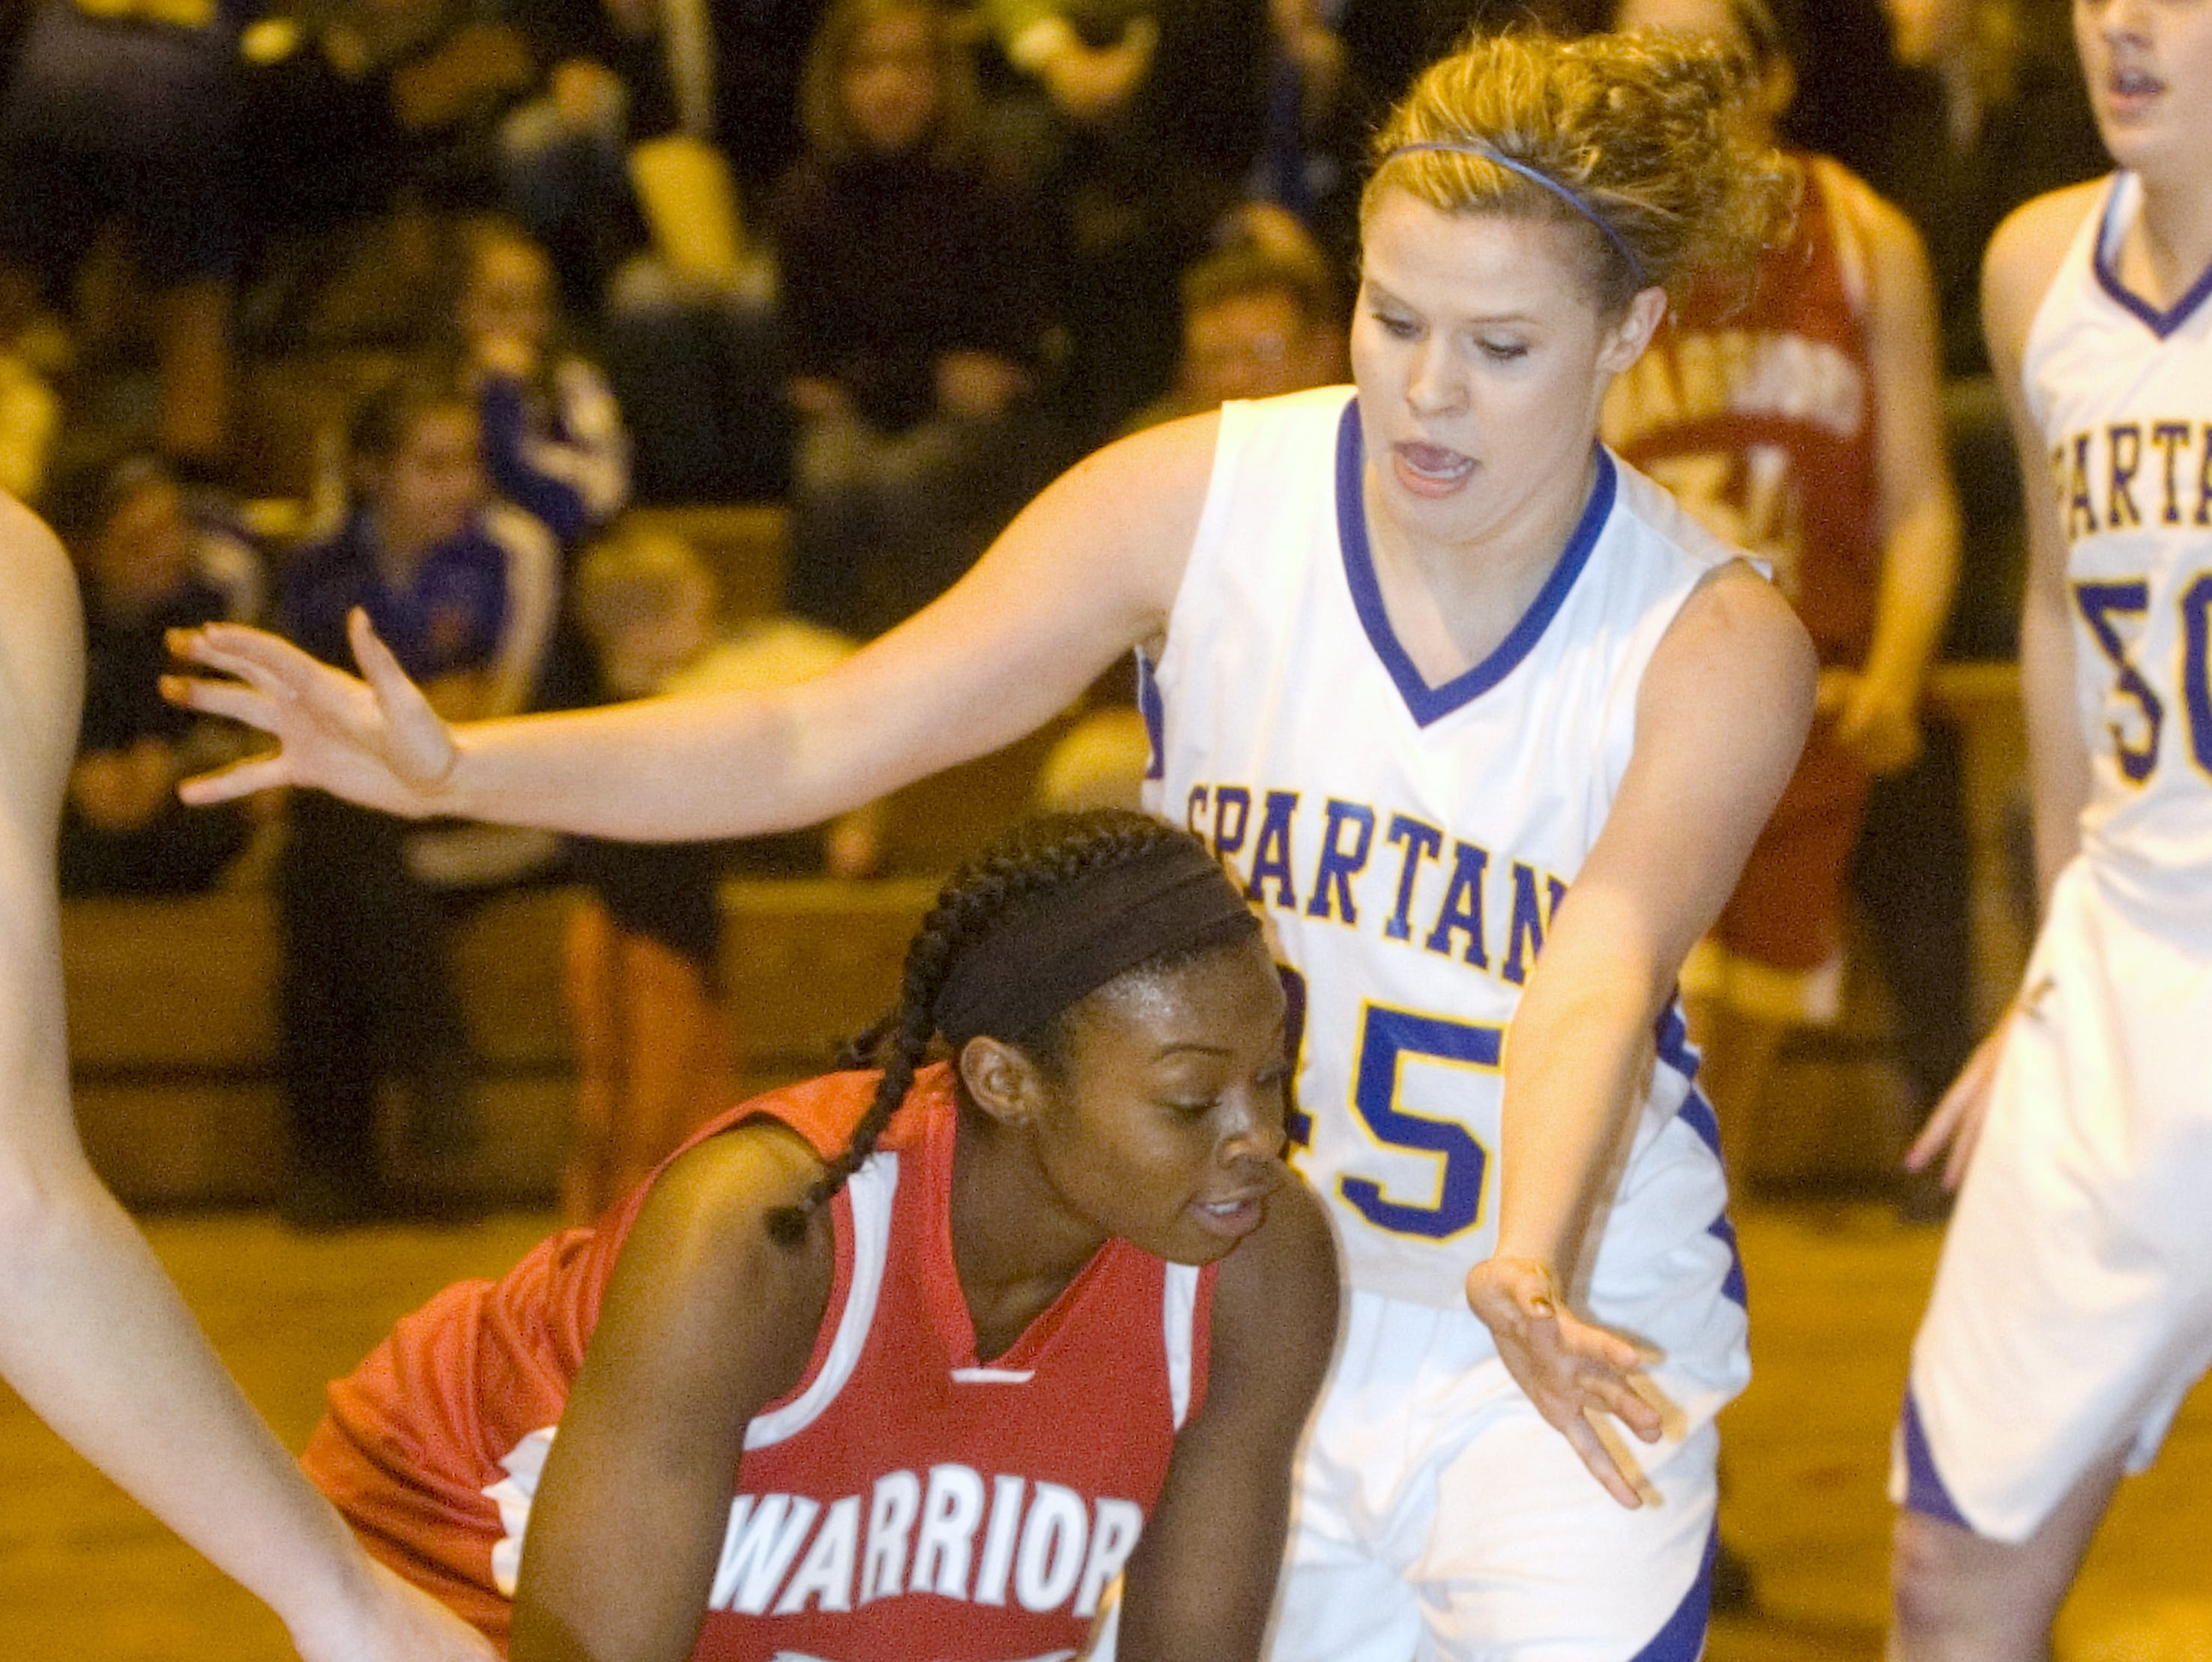 2010: Chenango Valley's Khaylah Moss, left, is guarded by Maine-Endwell's Kristen Chelak in the first quarter of Tuesday's game at M-E.